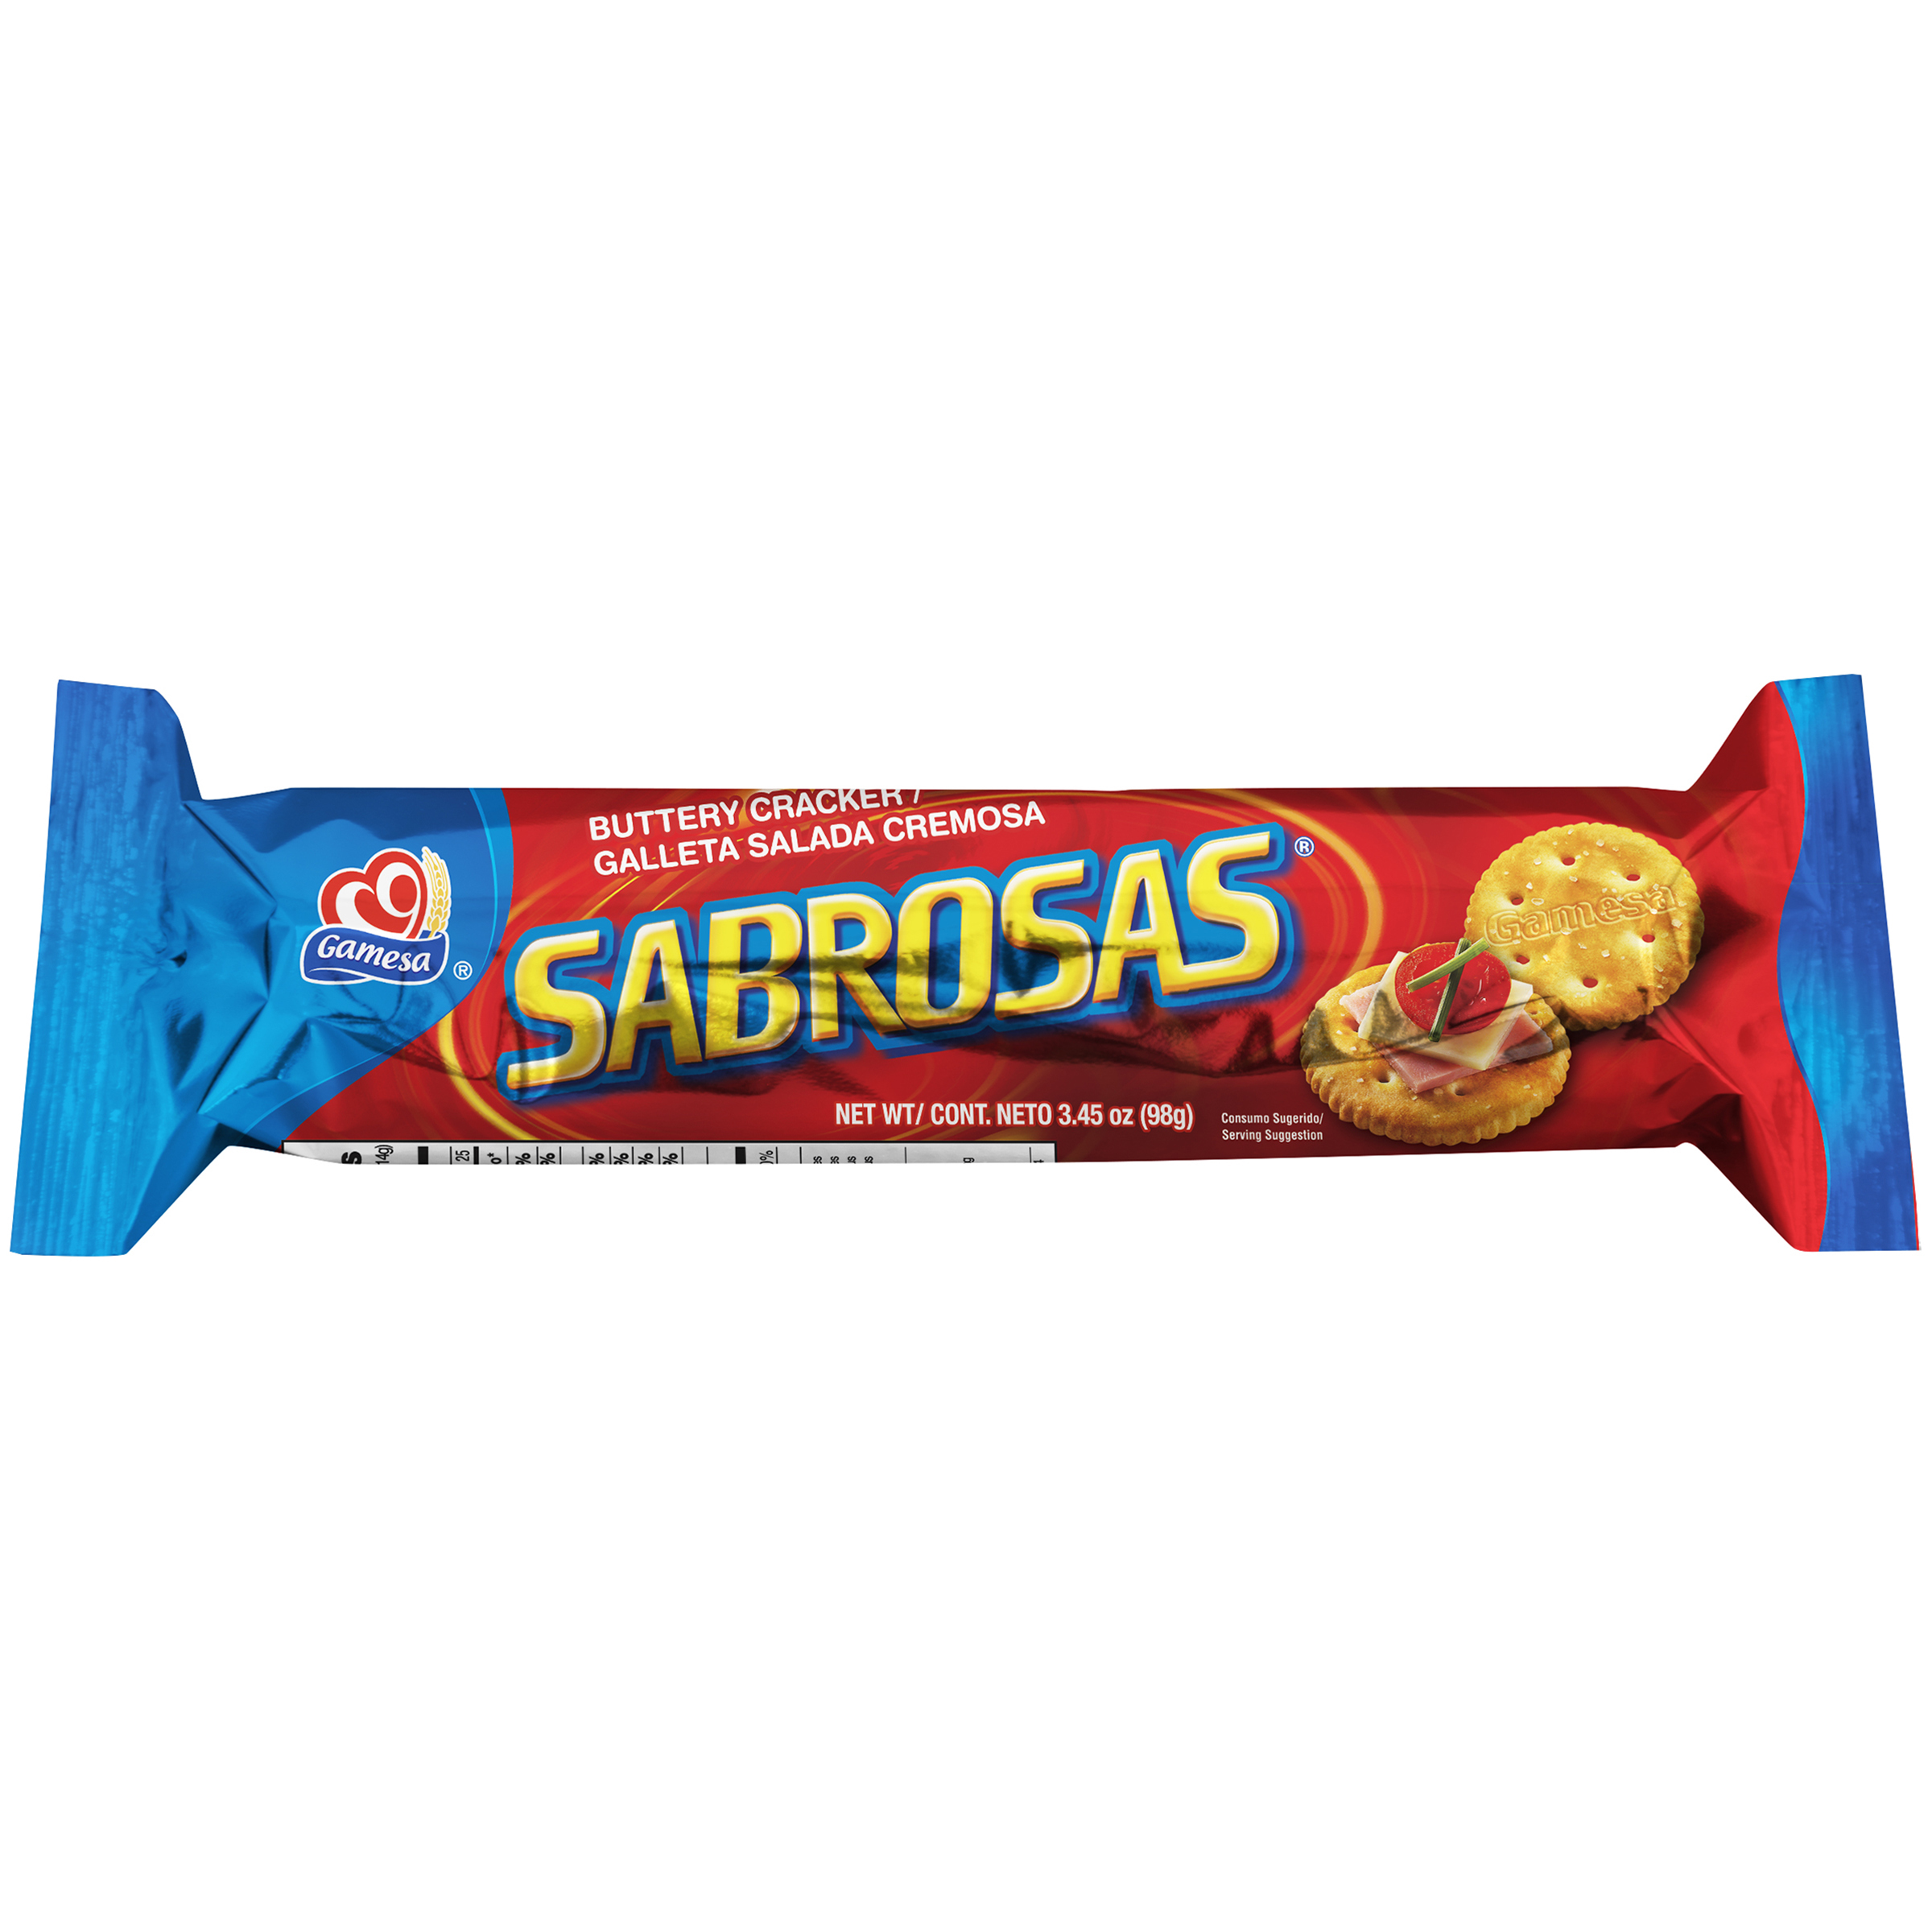 Gamesa Sabrosas Buttery Crackers, 3.45 Oz.